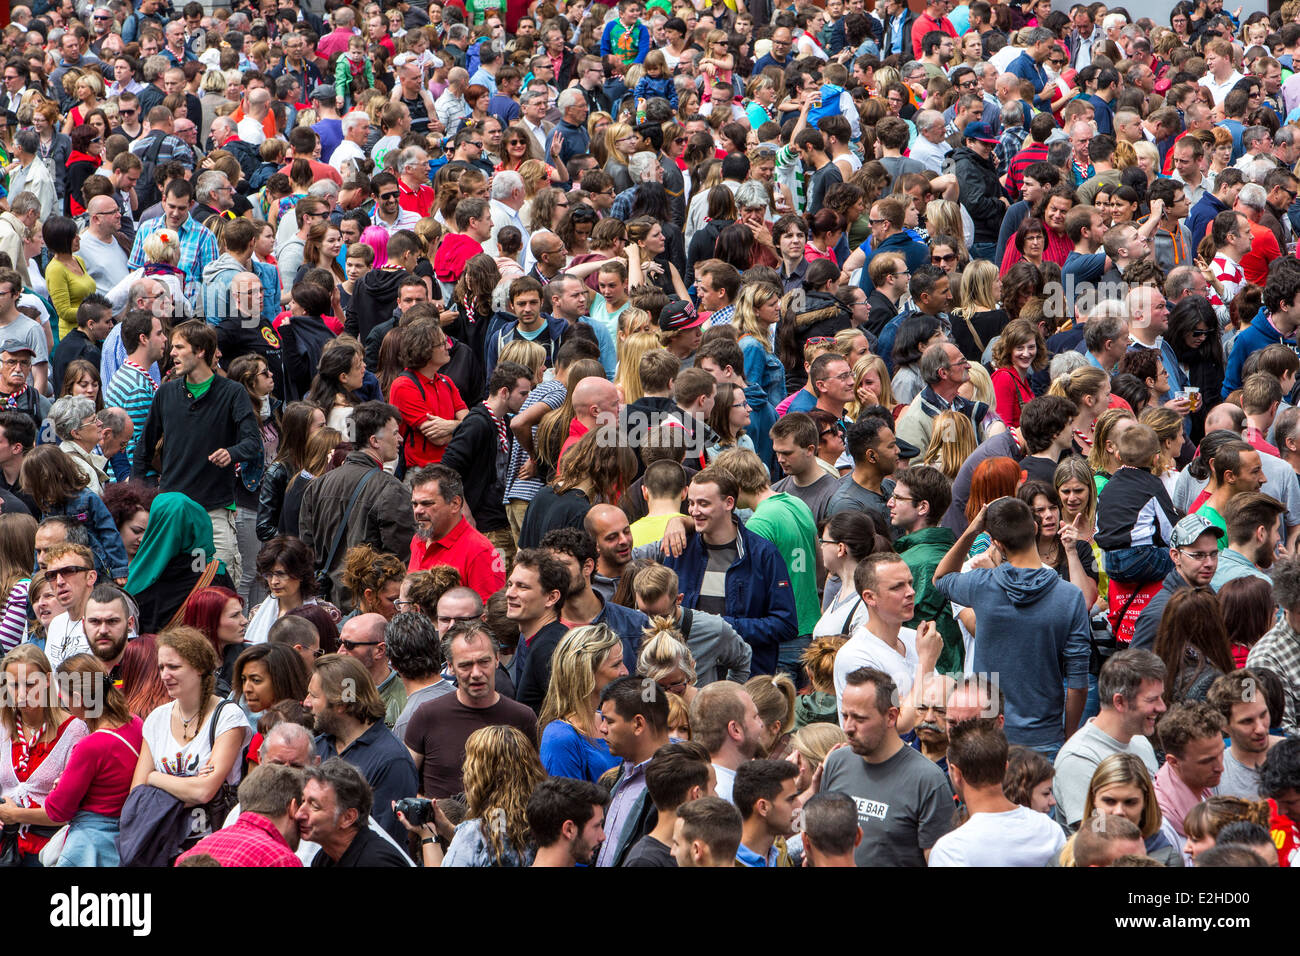 Crowd, many people in confined space, at a festival, - Stock Image